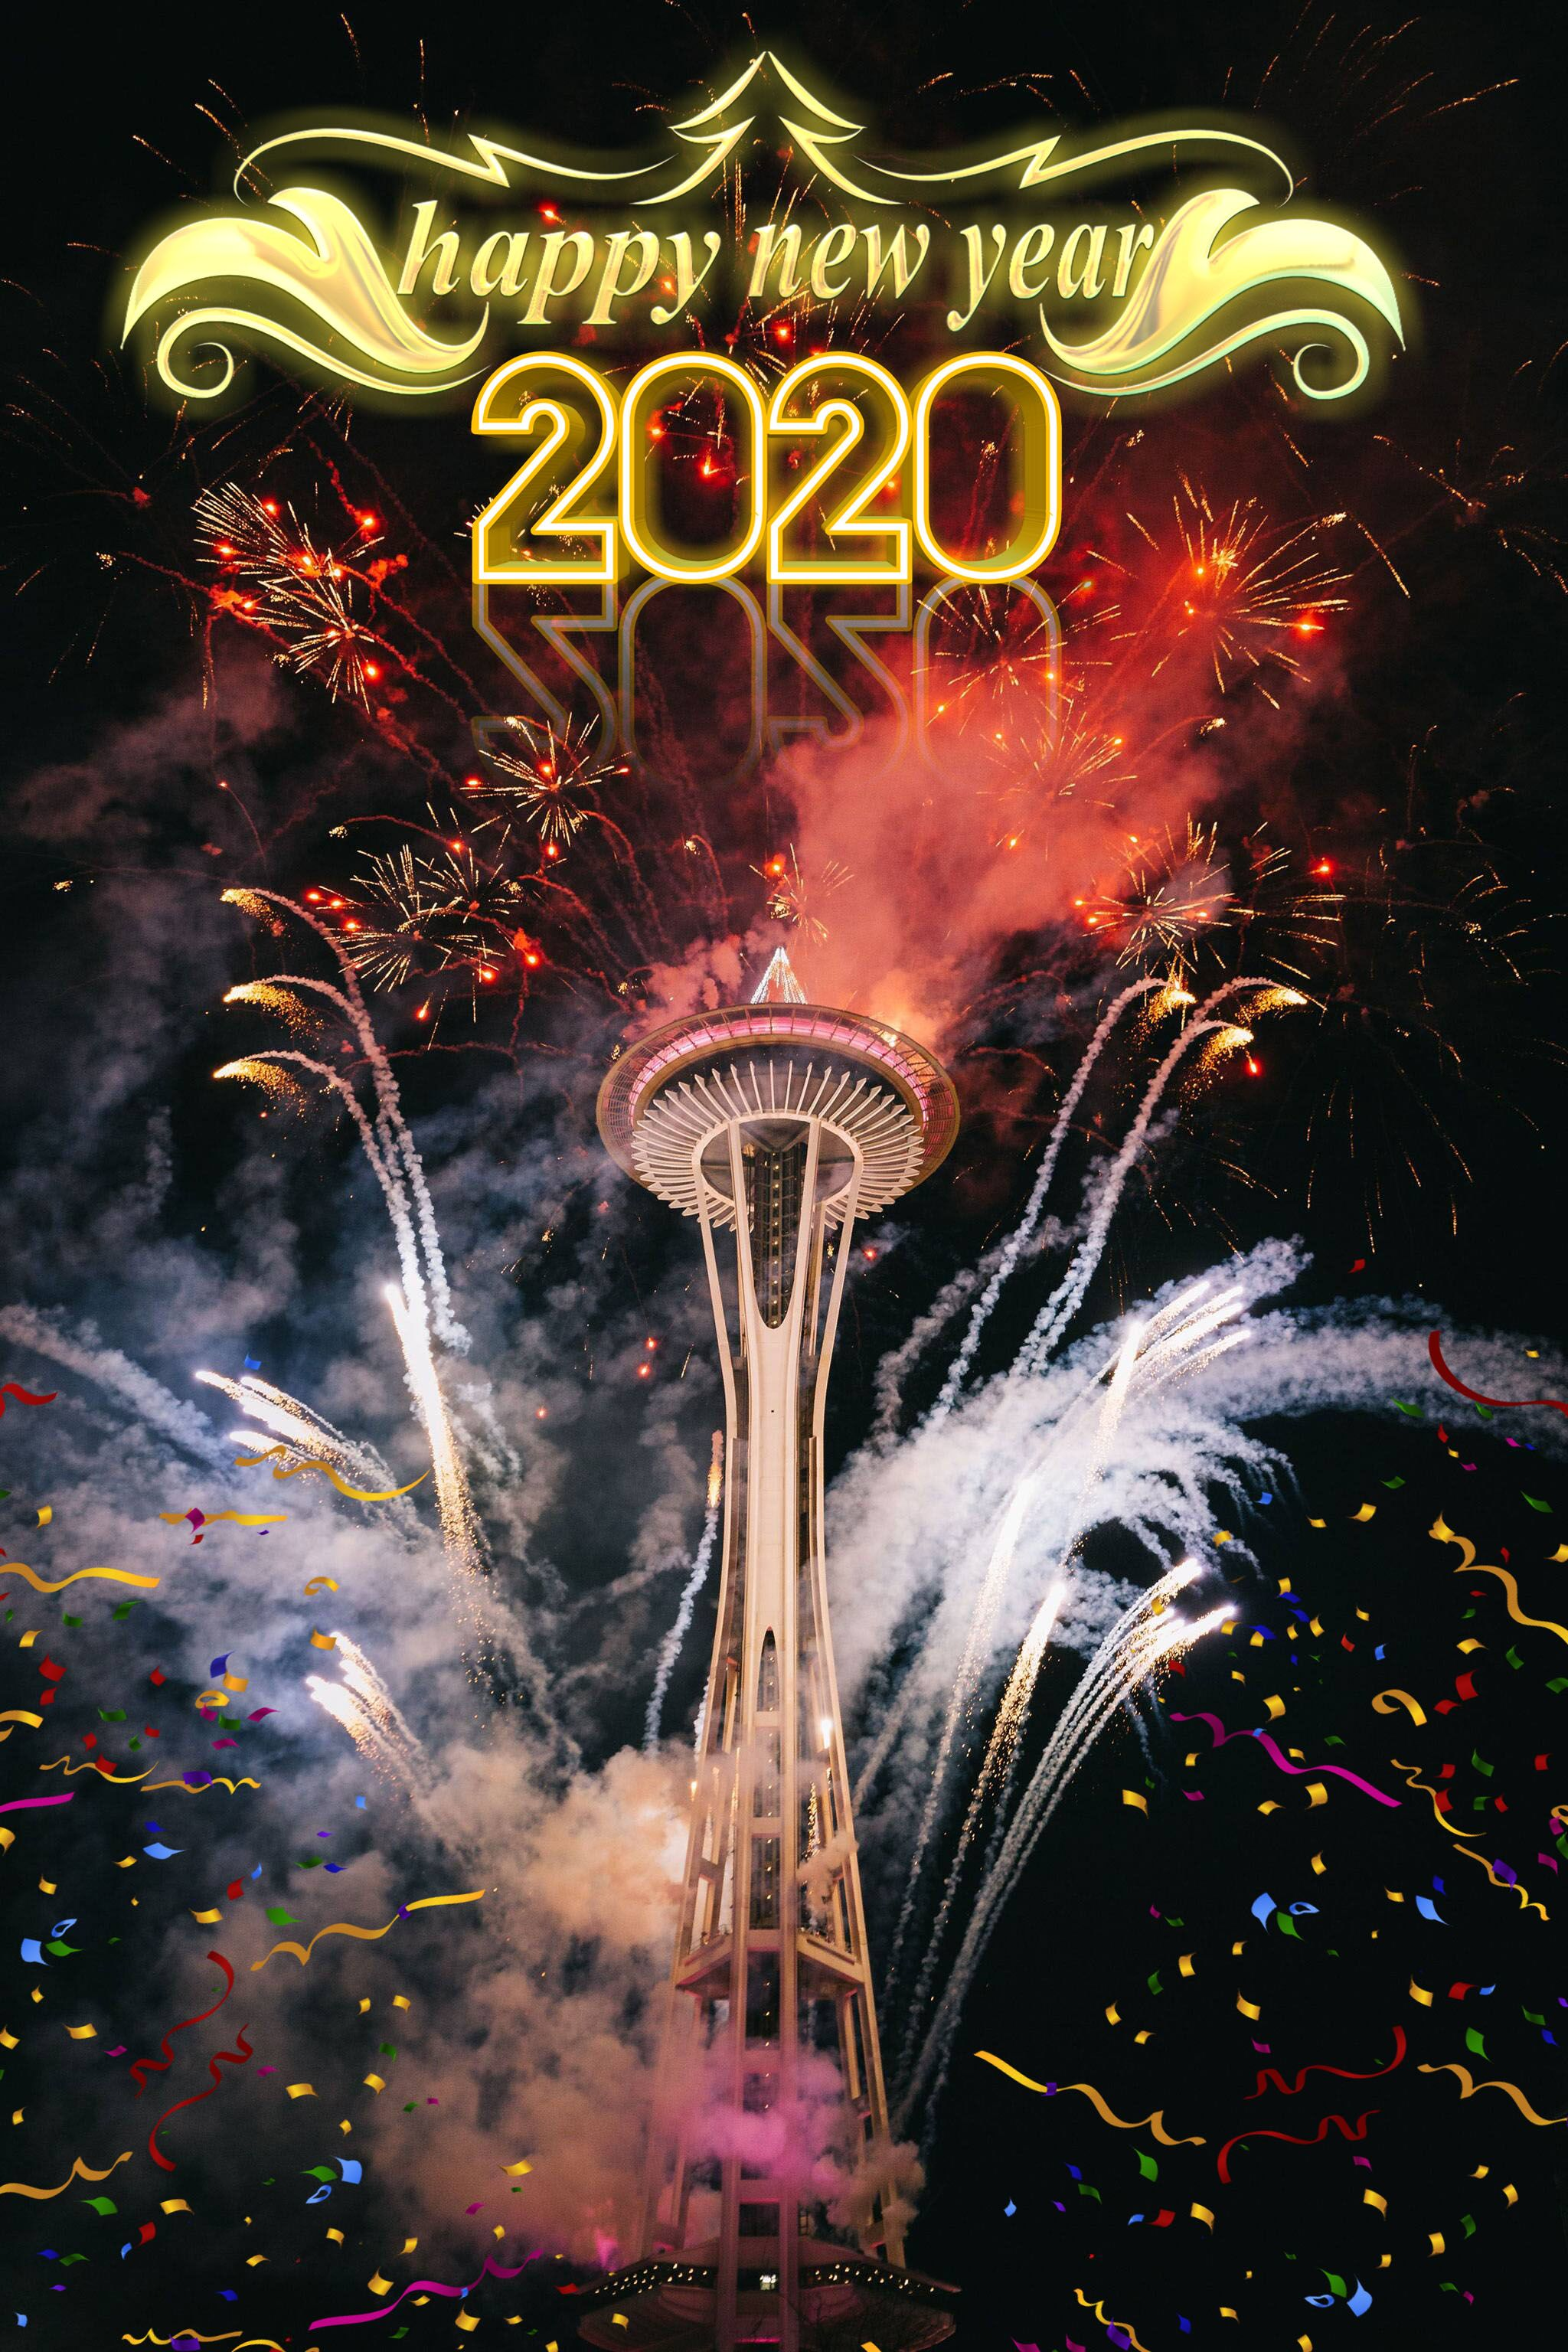 Top New Year 2020 Editing Background 2020 Editing Background Happy New Year 2020 Happy New Year Images